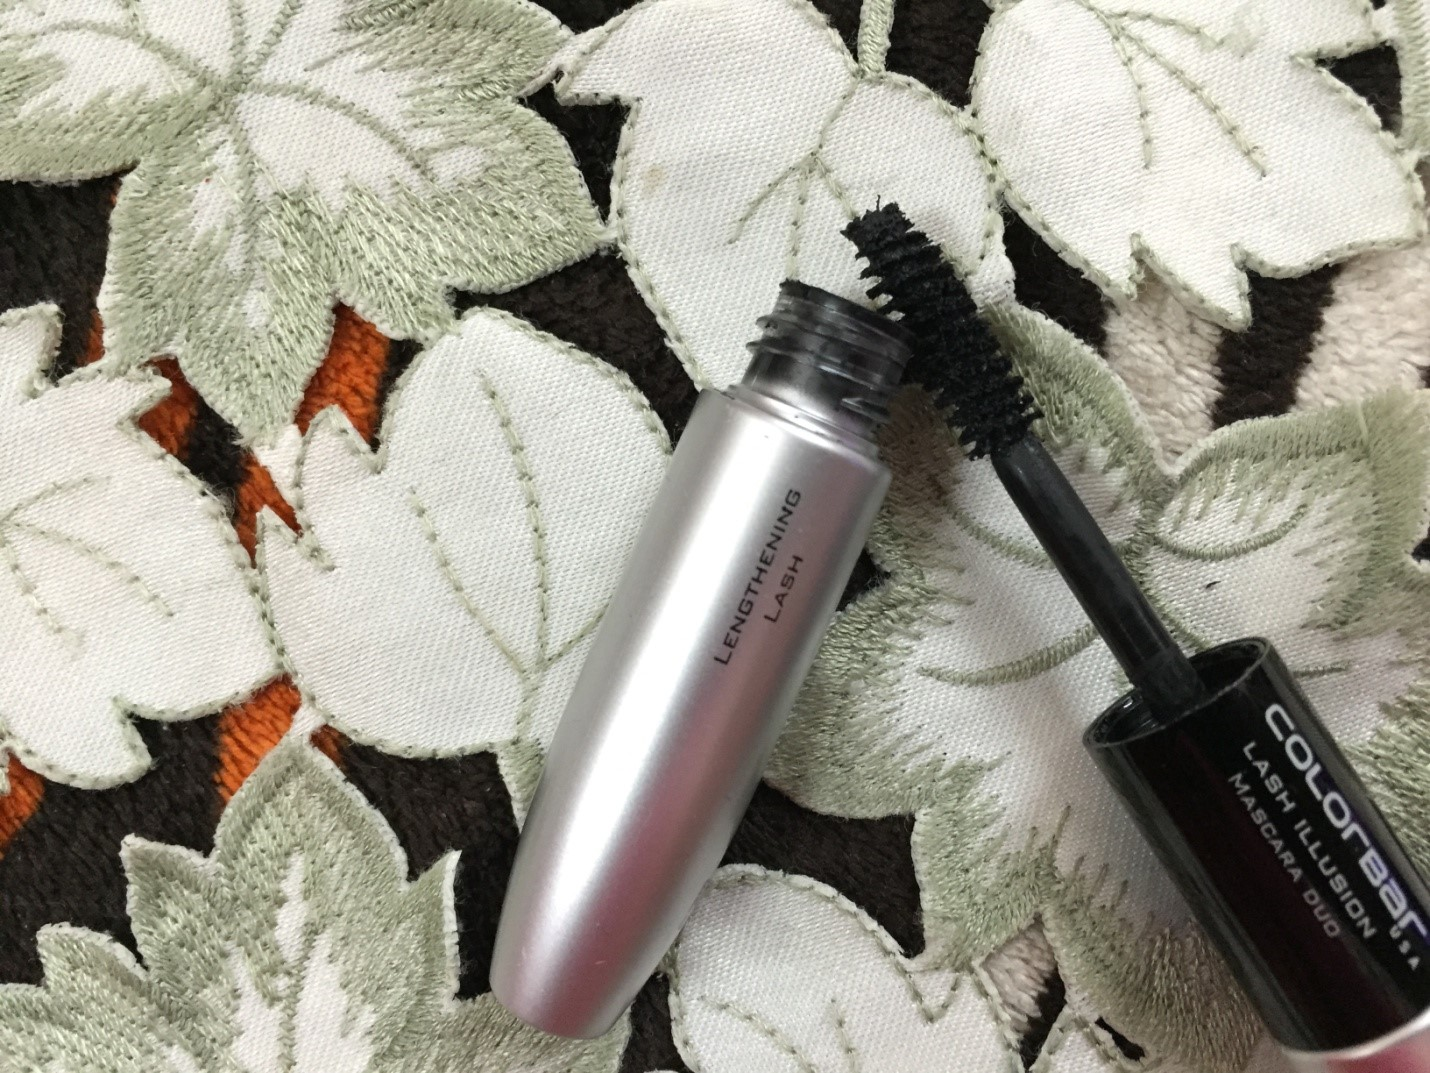 Colorbar Lash illusion Mascara duo